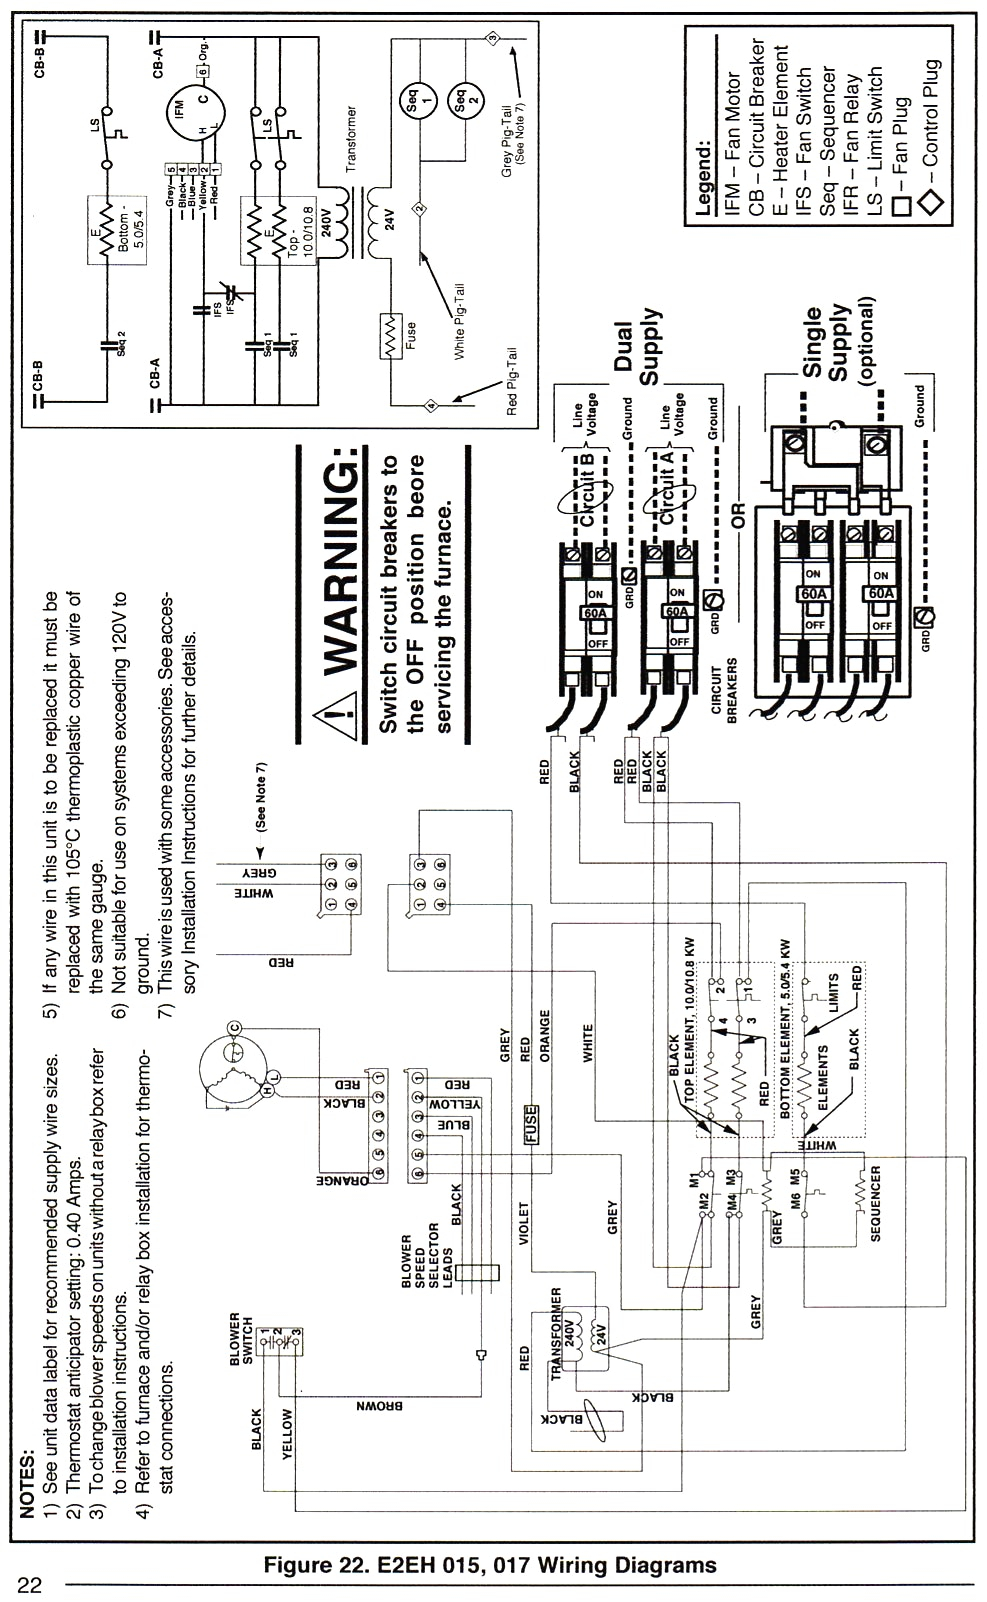 Wiring Diagram Database: Nordyne Electric Furnace Wiring